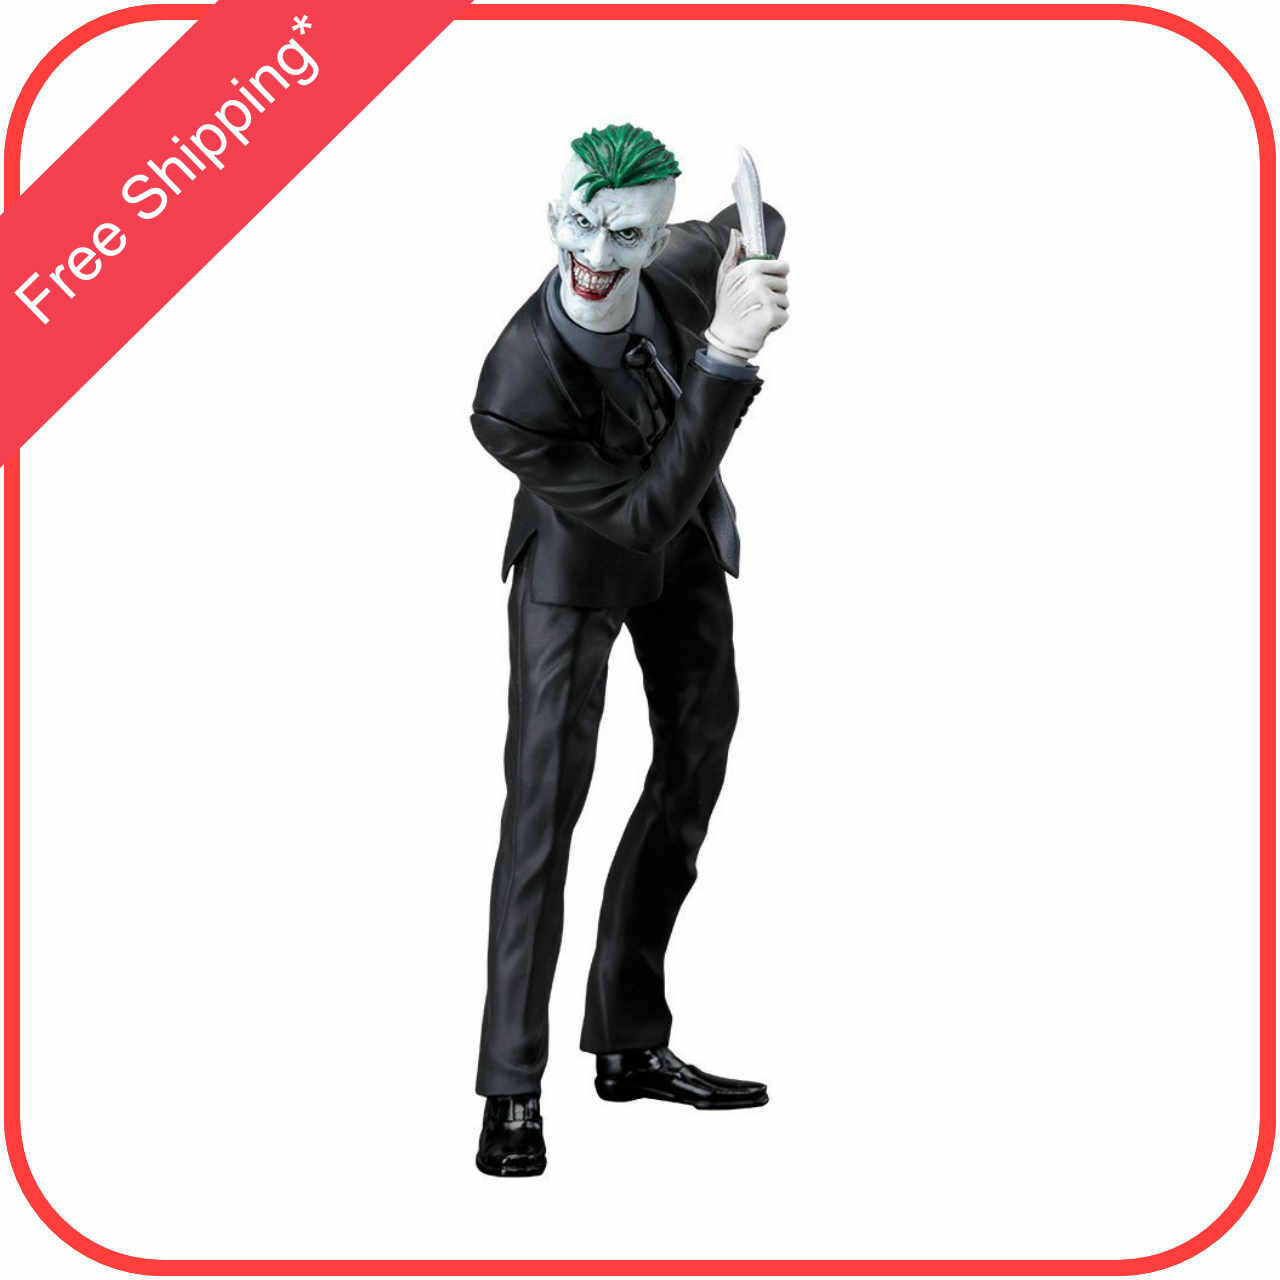 DC Comics The Joker ArtFX+ 1 10 scale Statue Figure by Kotobukiya